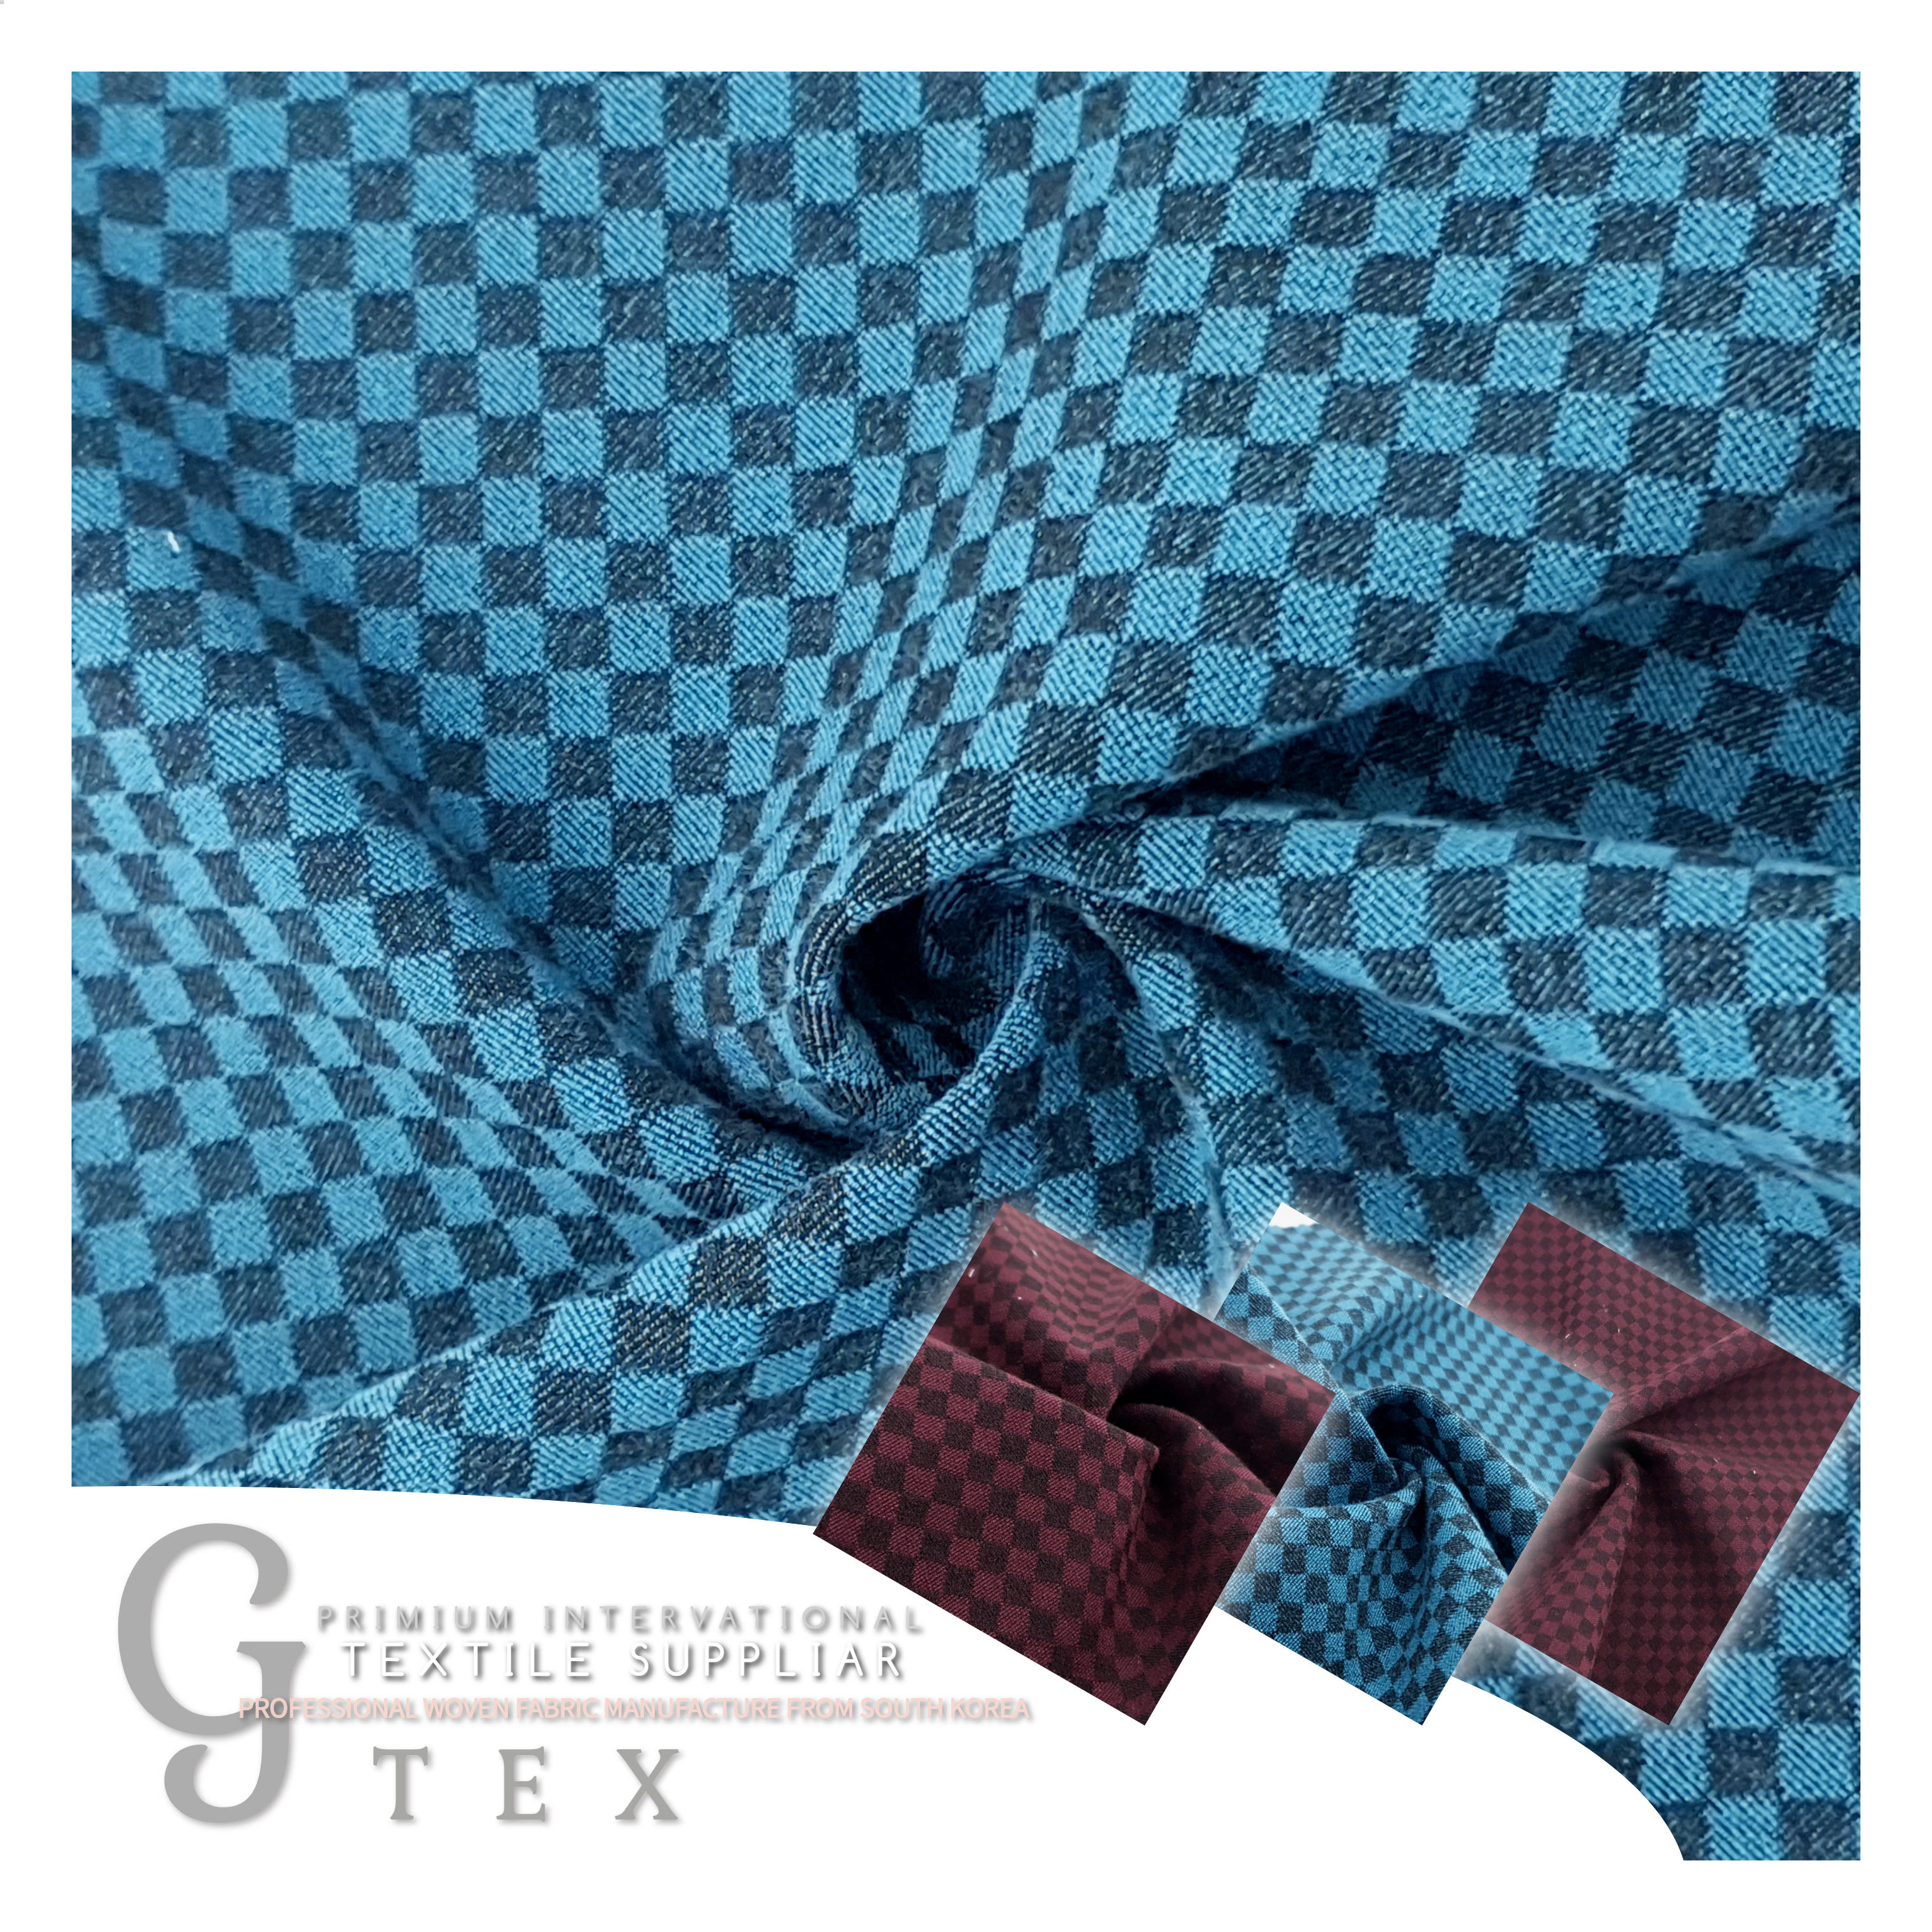 G TEX Made In Korea Premium Quality Woven YARN DYED Fabric POLY 61% RAYON 32% PU 7% For Women Dress, Skirt, Shirt, etc